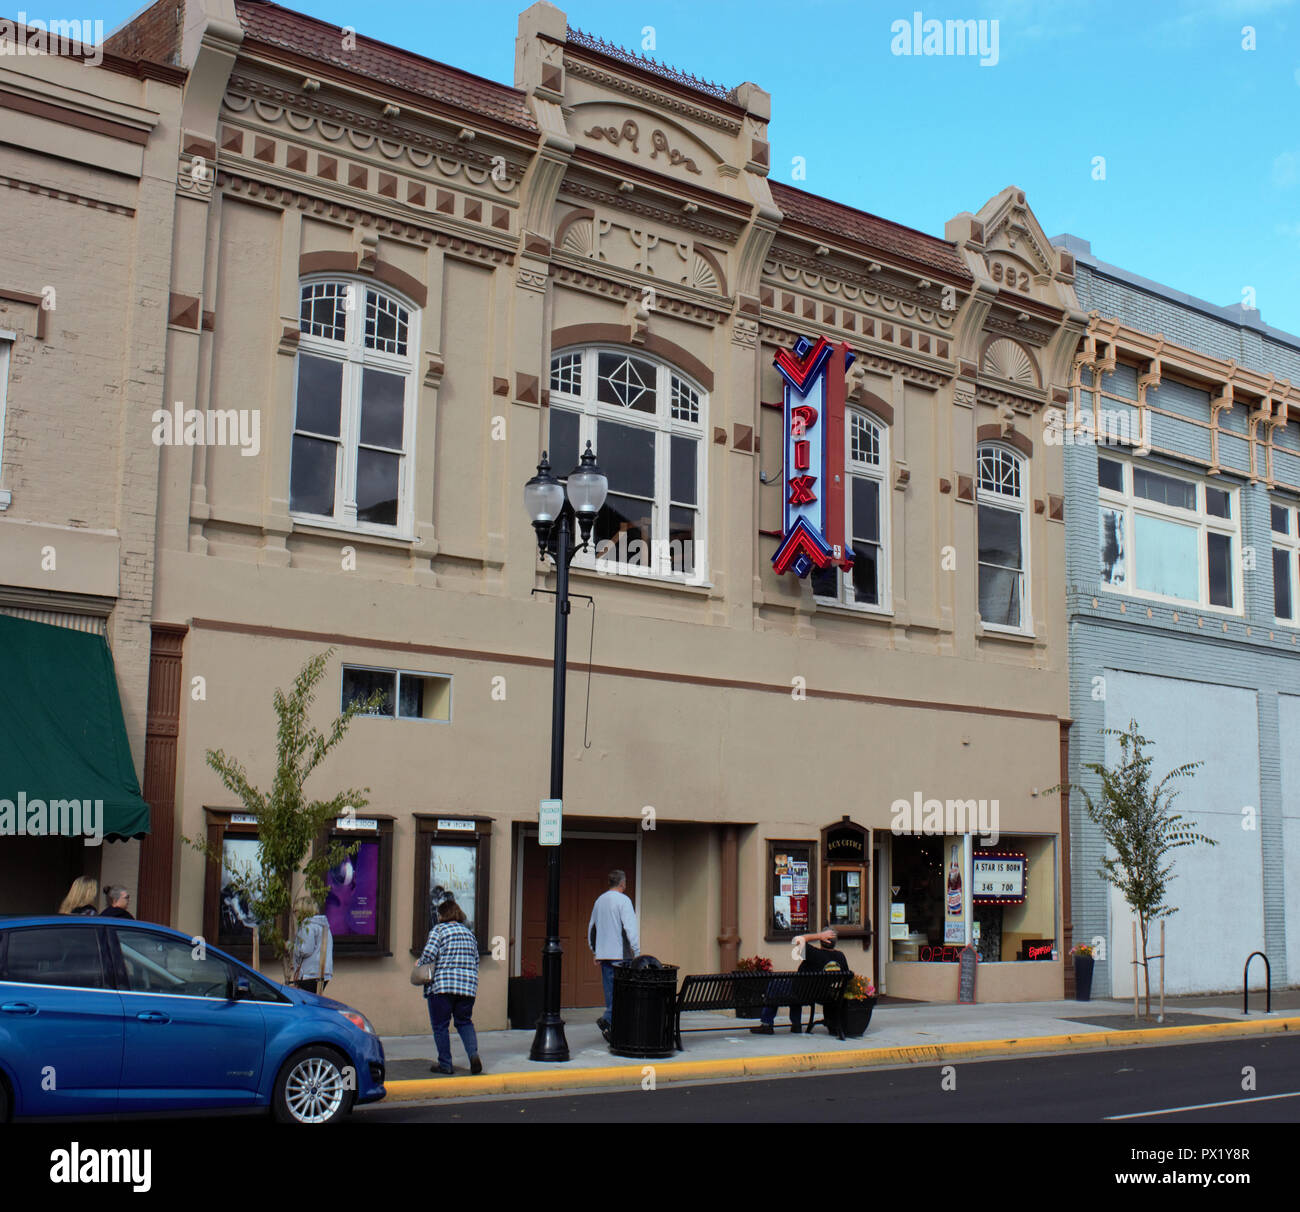 A refurbished Pix Theater in downtown Albany, Oregon USA - Stock Image